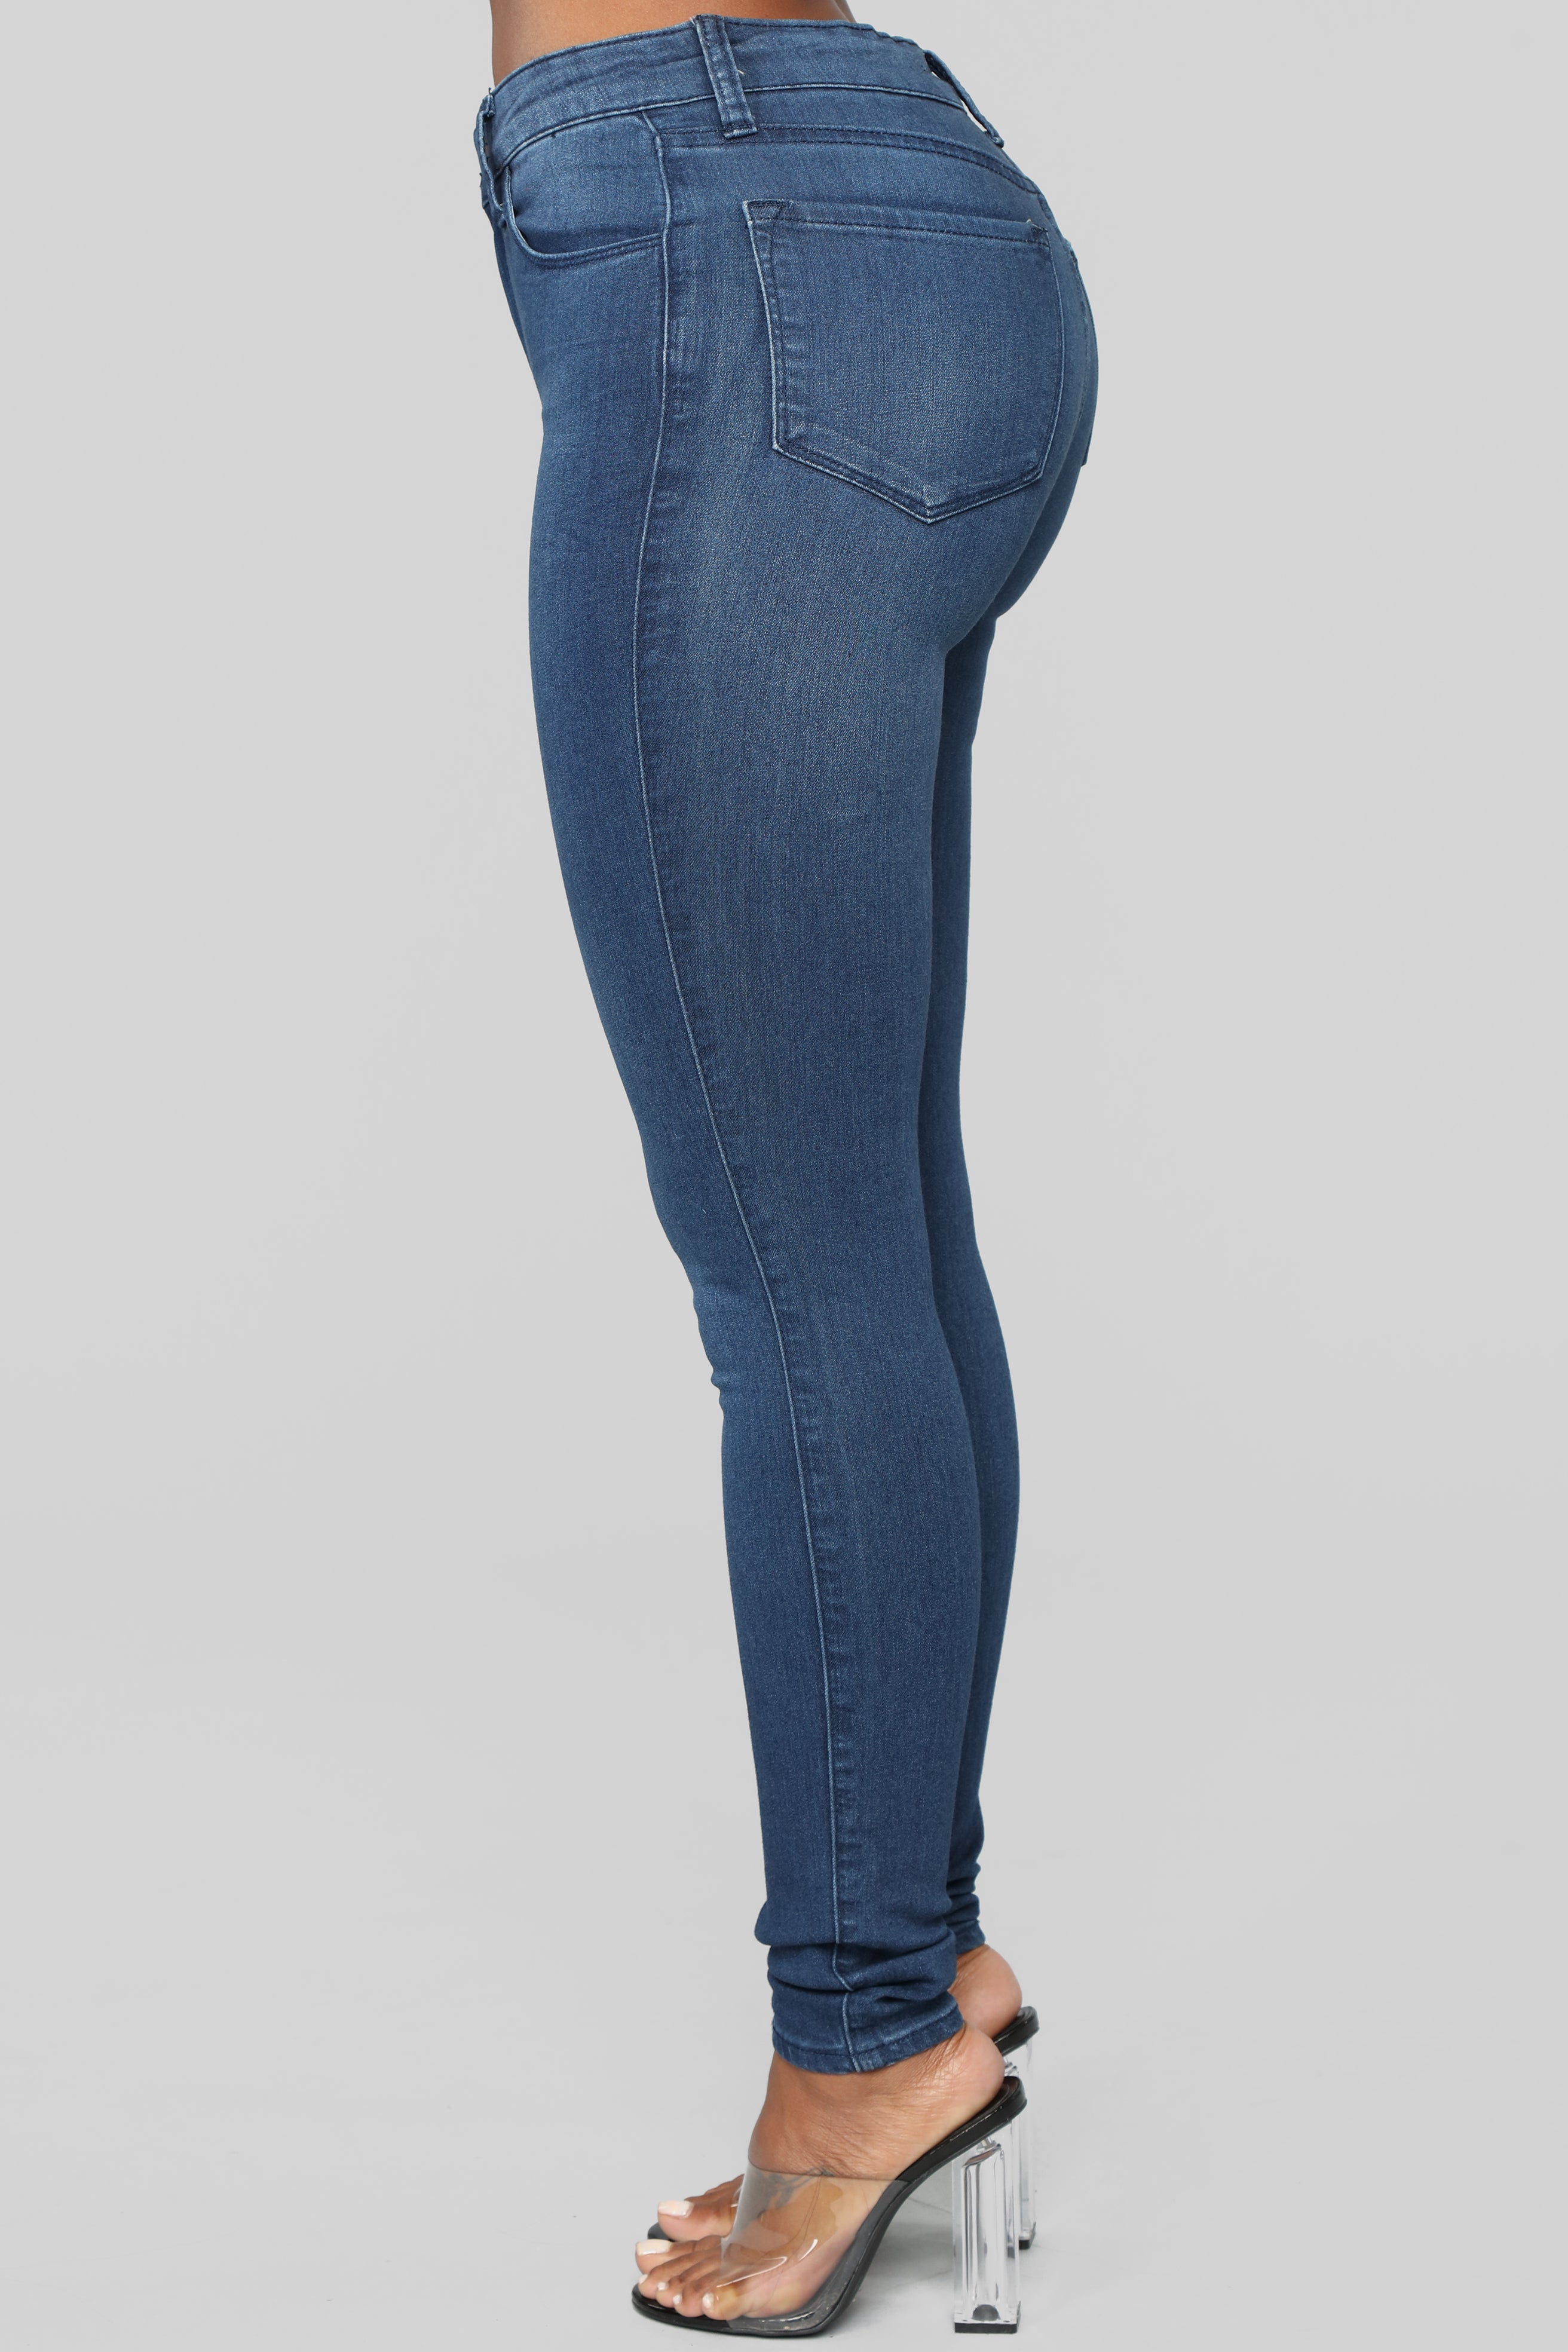 d167bbe4ad930 Luxe Glam High Waist Skinny Jeans - Dark